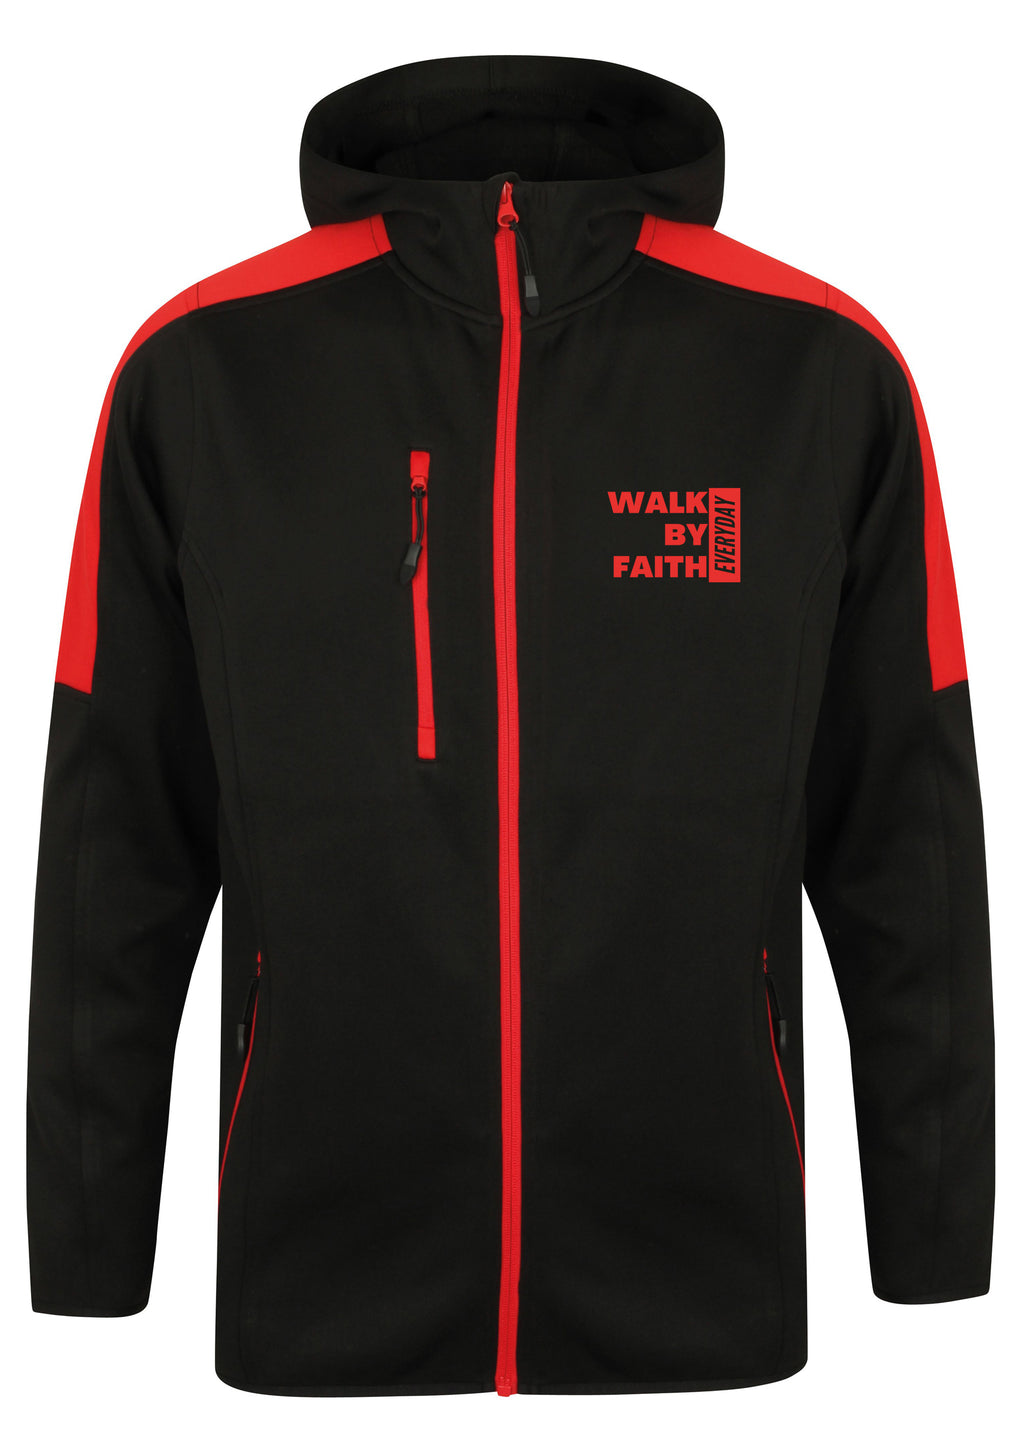 WALK BY FAITH EVERYDAY Unisex Active Soft shell Jacket (Red)